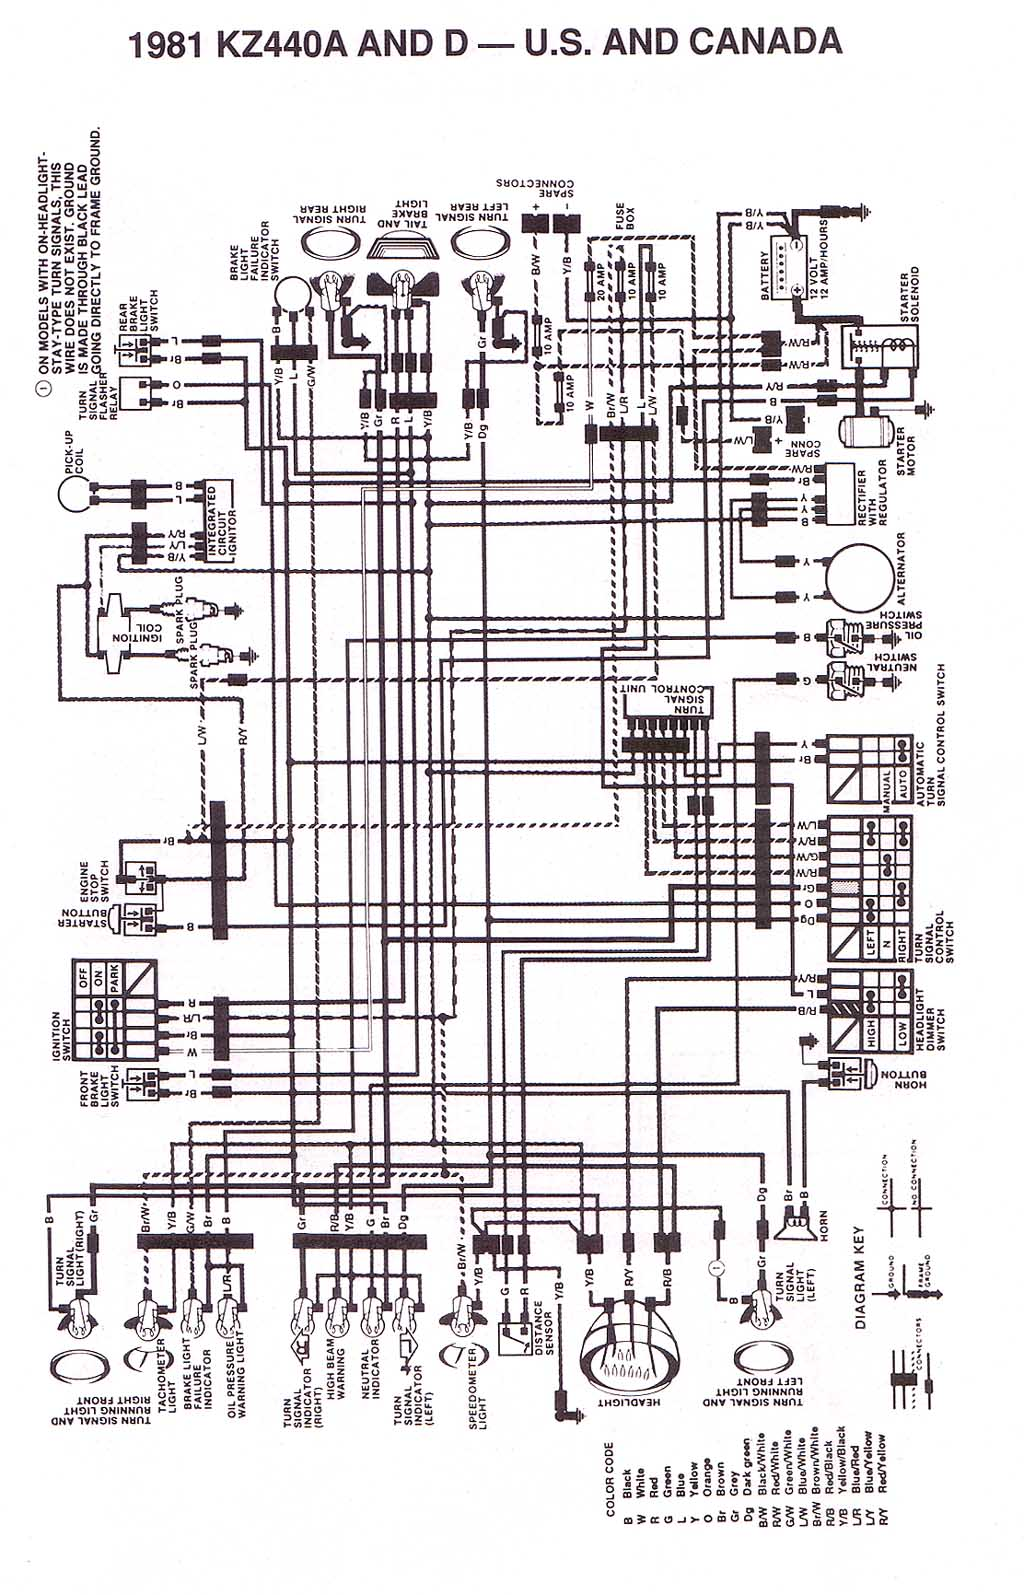 KZ440A and D wiring diagram %28US%29 1981 kawasaki ltd 440 rebuild thread page 5 barf bay area 1980 kawasaki kz440 wiring diagram at readyjetset.co